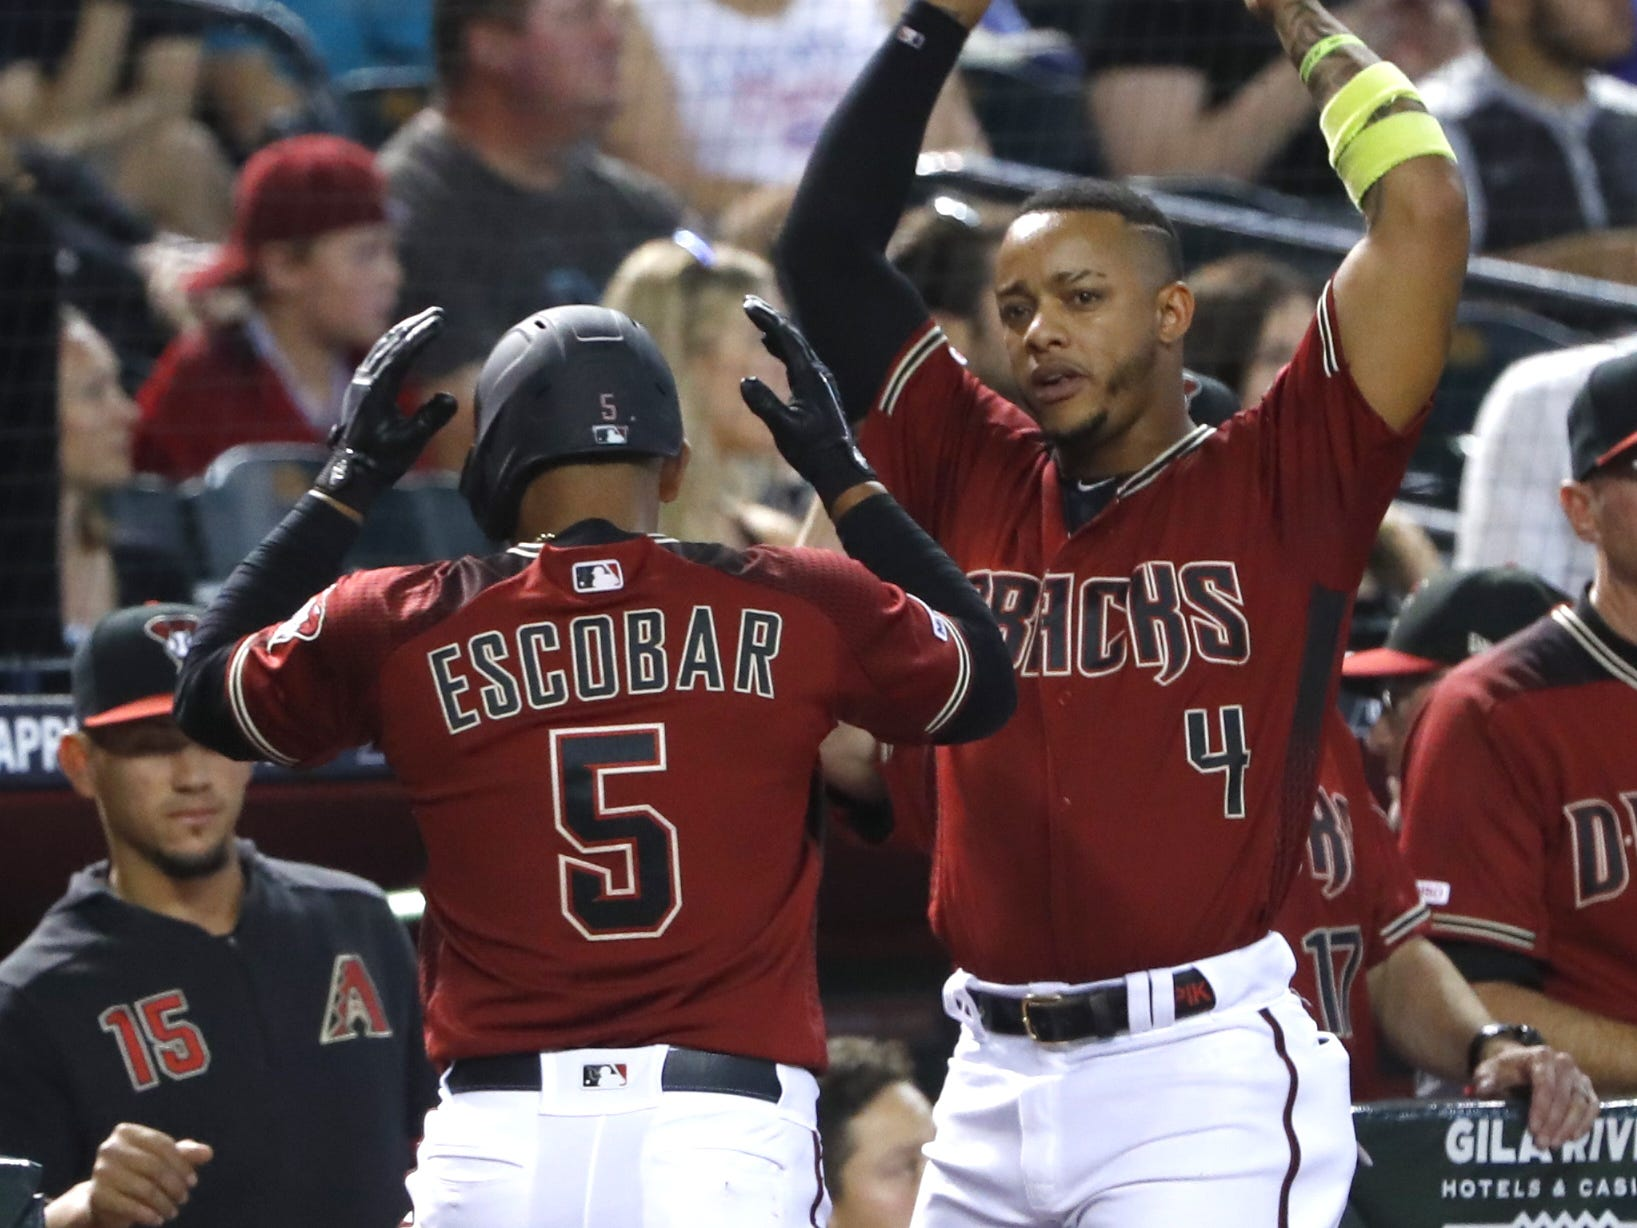 Diamondbacks' Eduardo Escobar (5) celebrates with Ketel Marte (4) after a home run during the fourth inning against the Cubs at Chase Field in Phoenix, Ariz. on April 28, 2019.